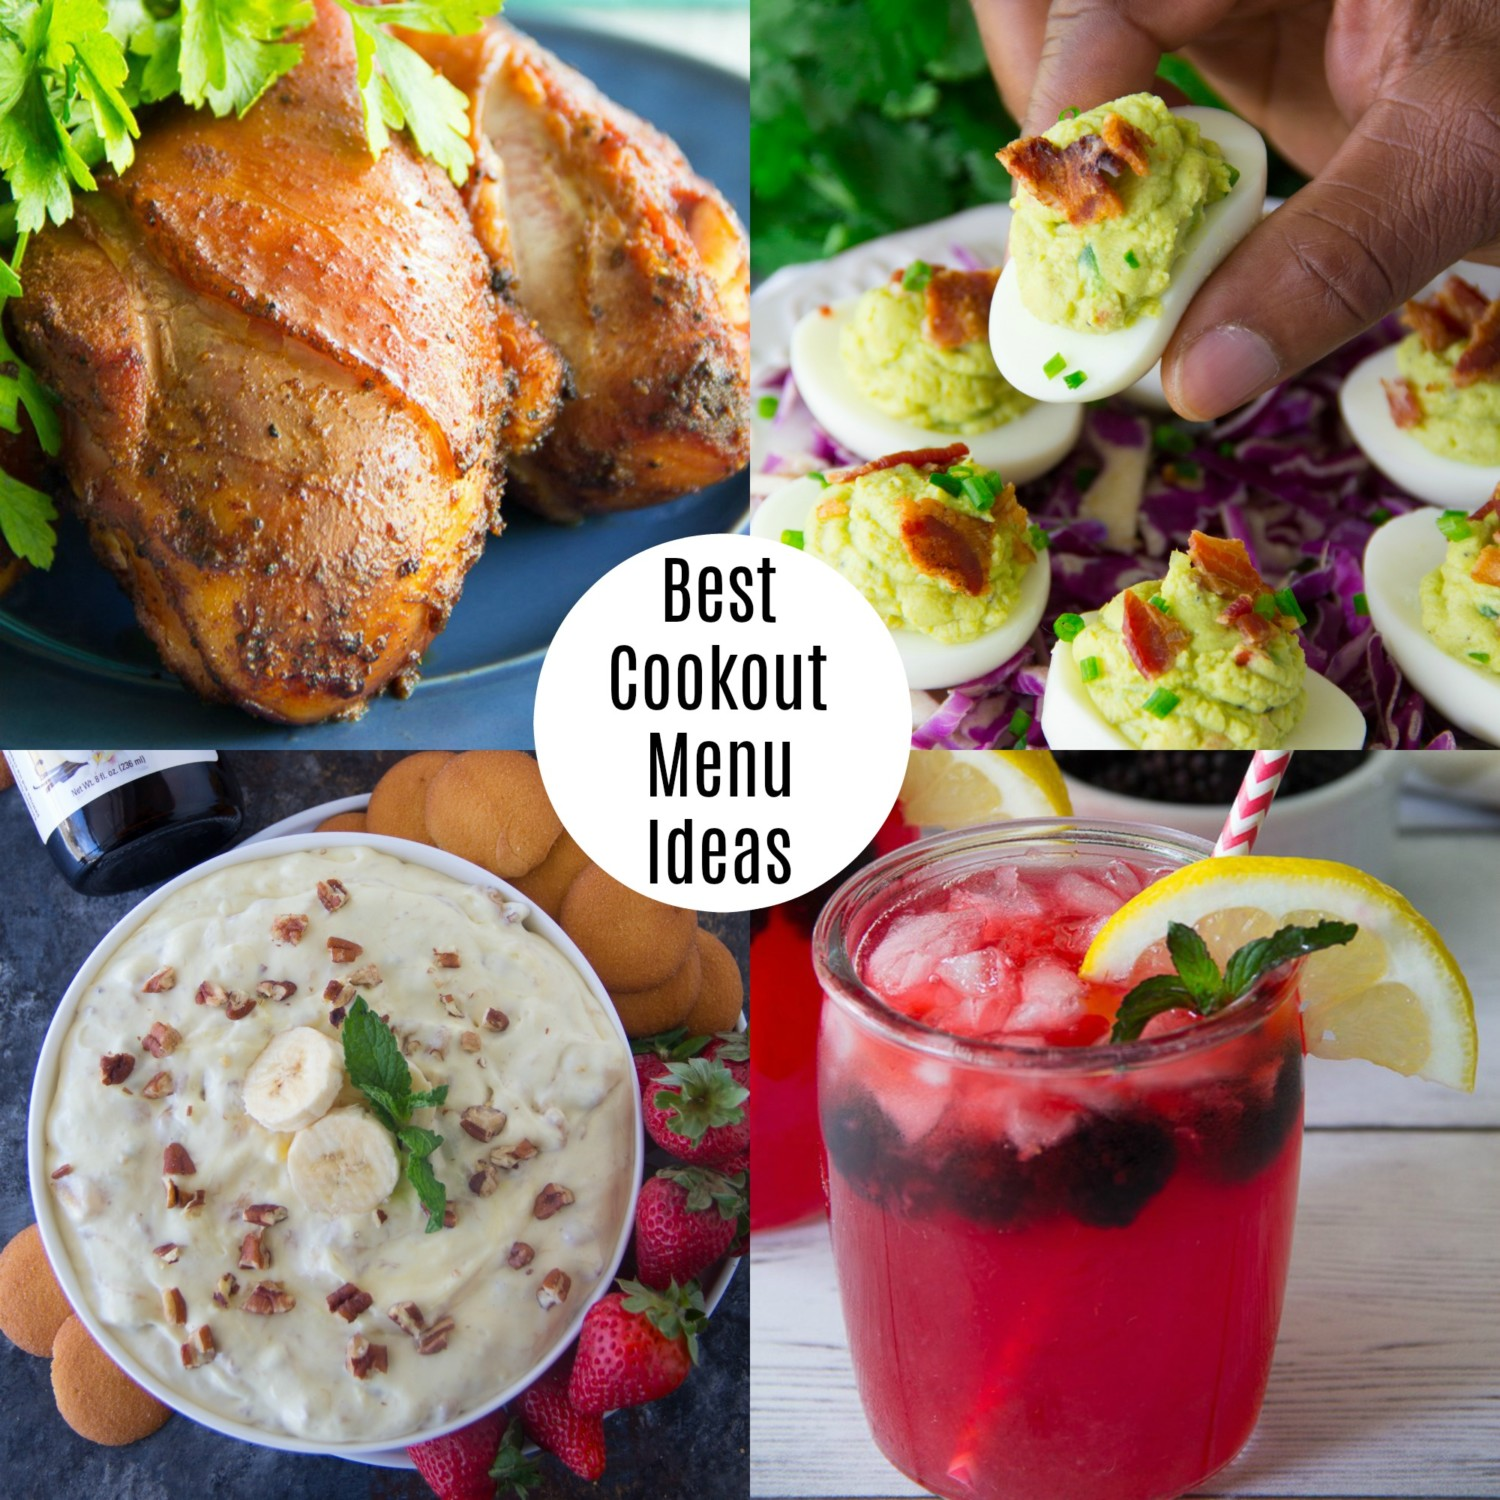 Best Cookout Menu Ideas To Try This Weekend